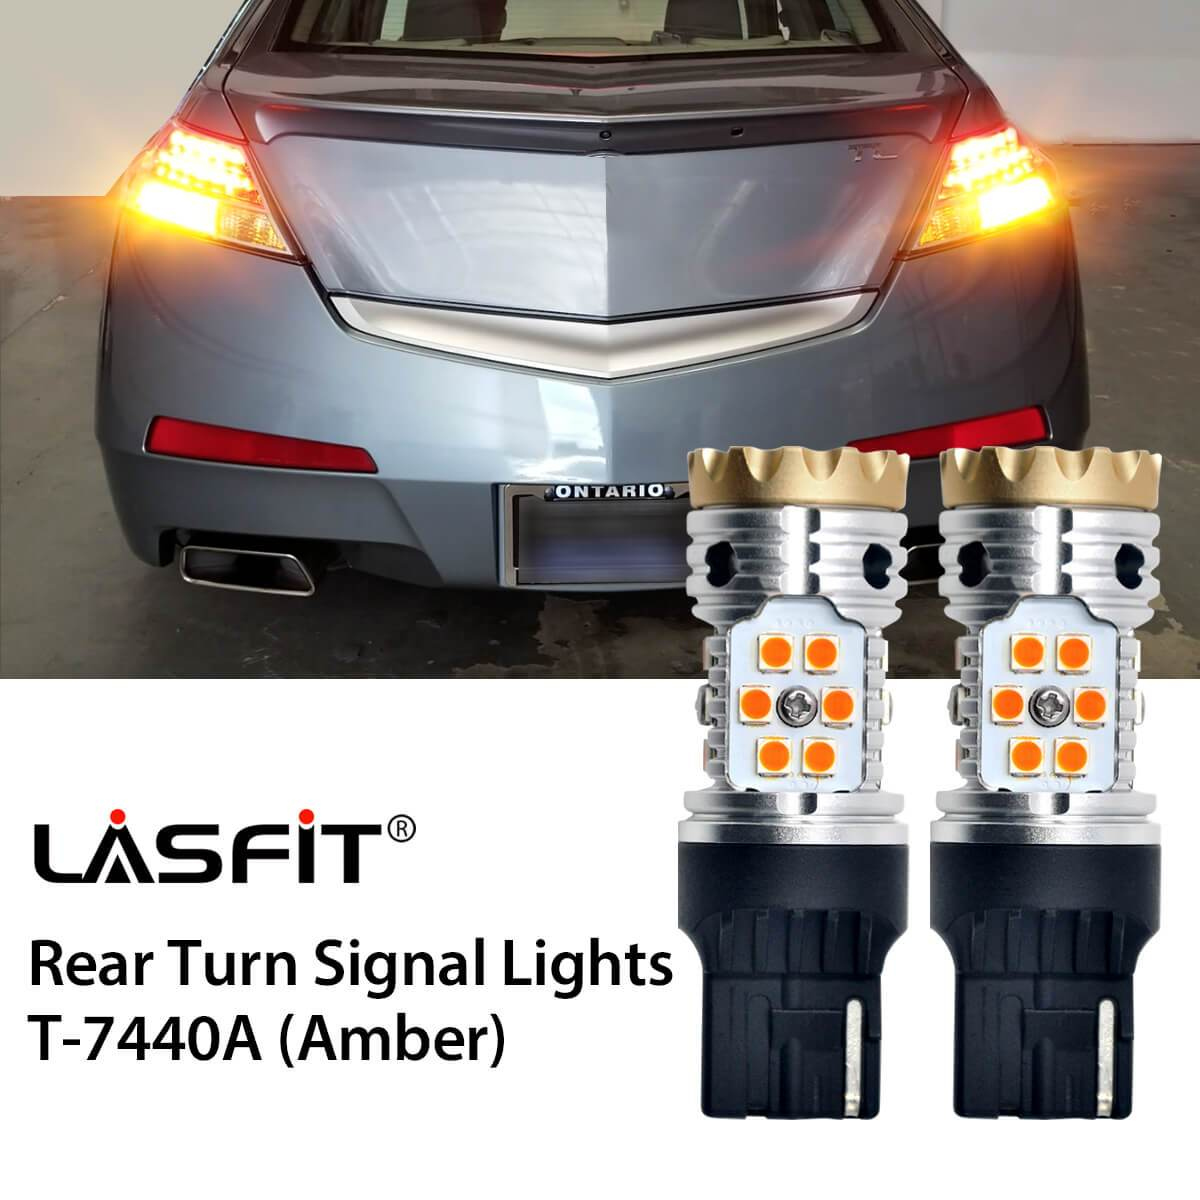 LED Exterior Light Bulbs Upgrade For 09-11 Acura TL LASFIT